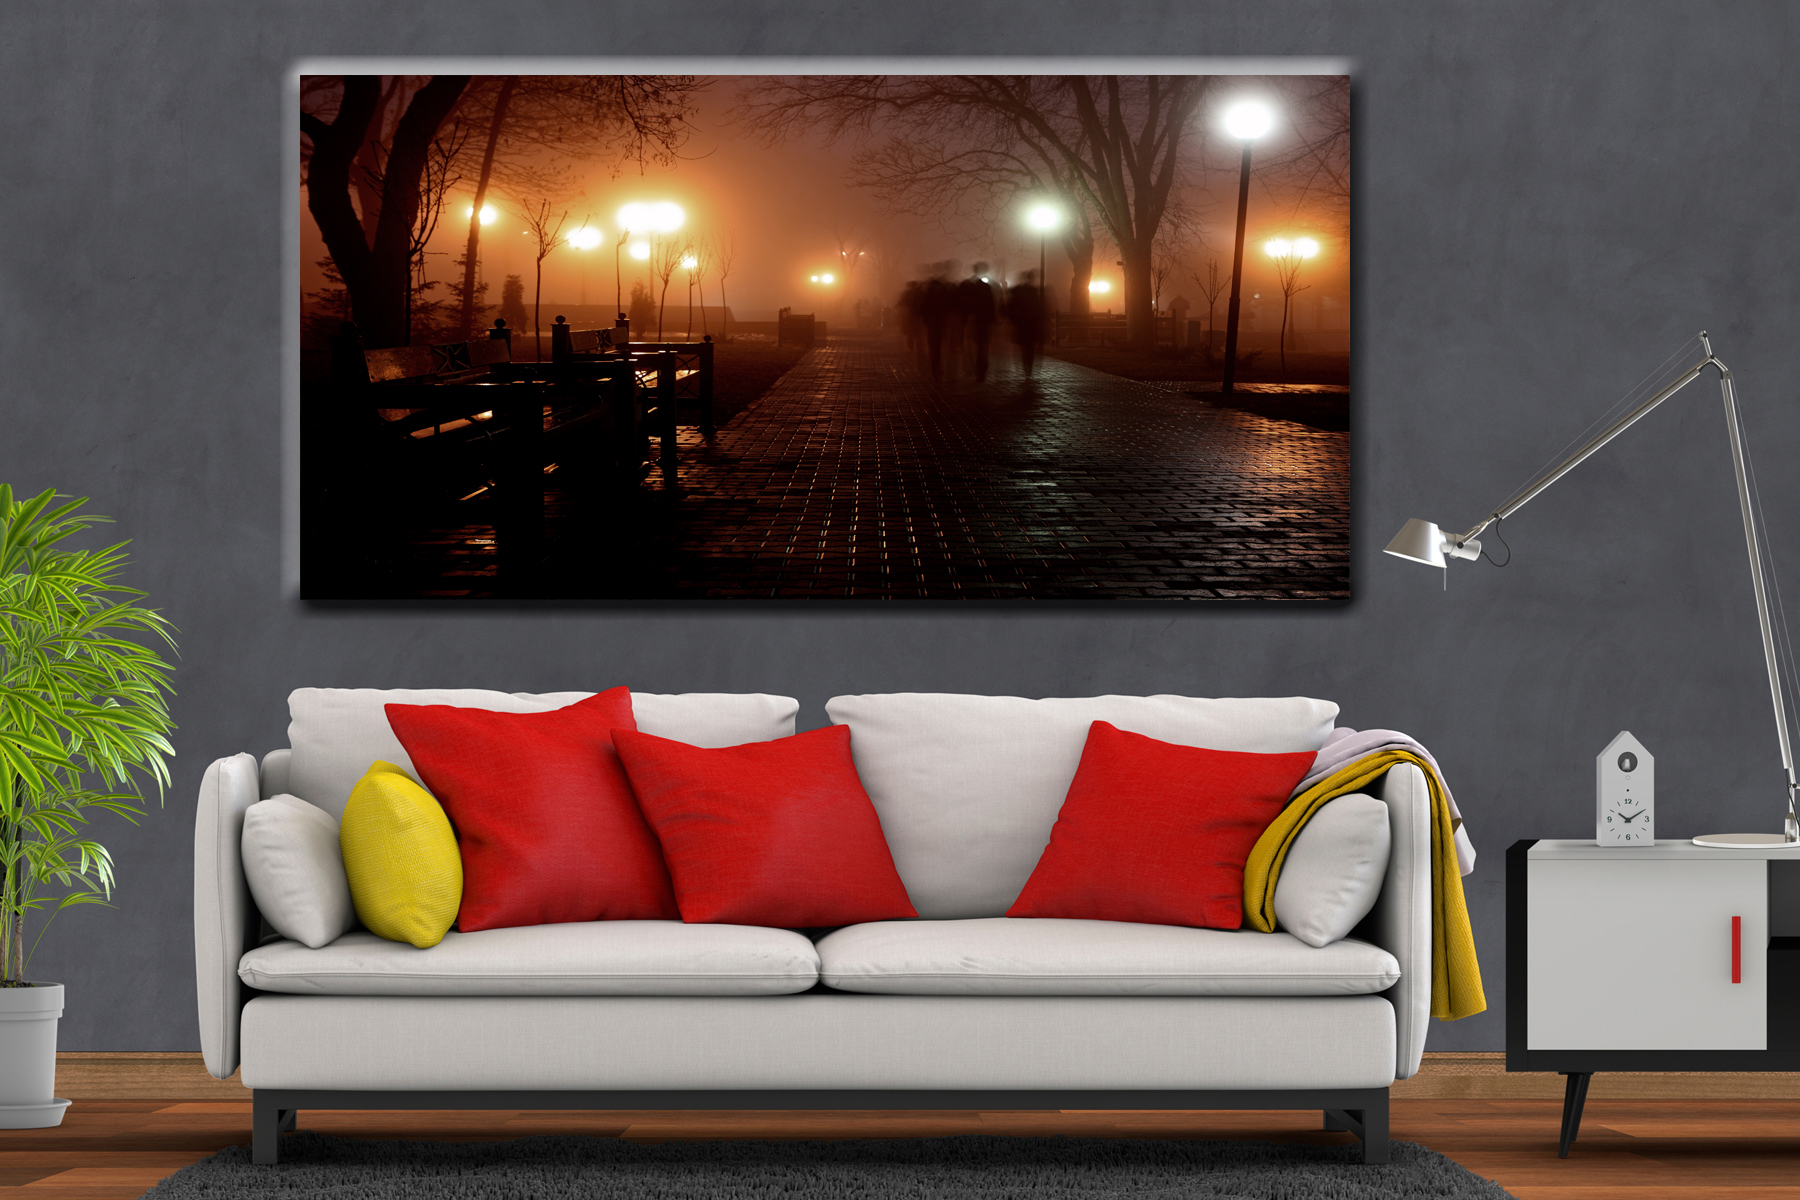 Canvas Art Wall Decor, cities 20219 21 LARGE